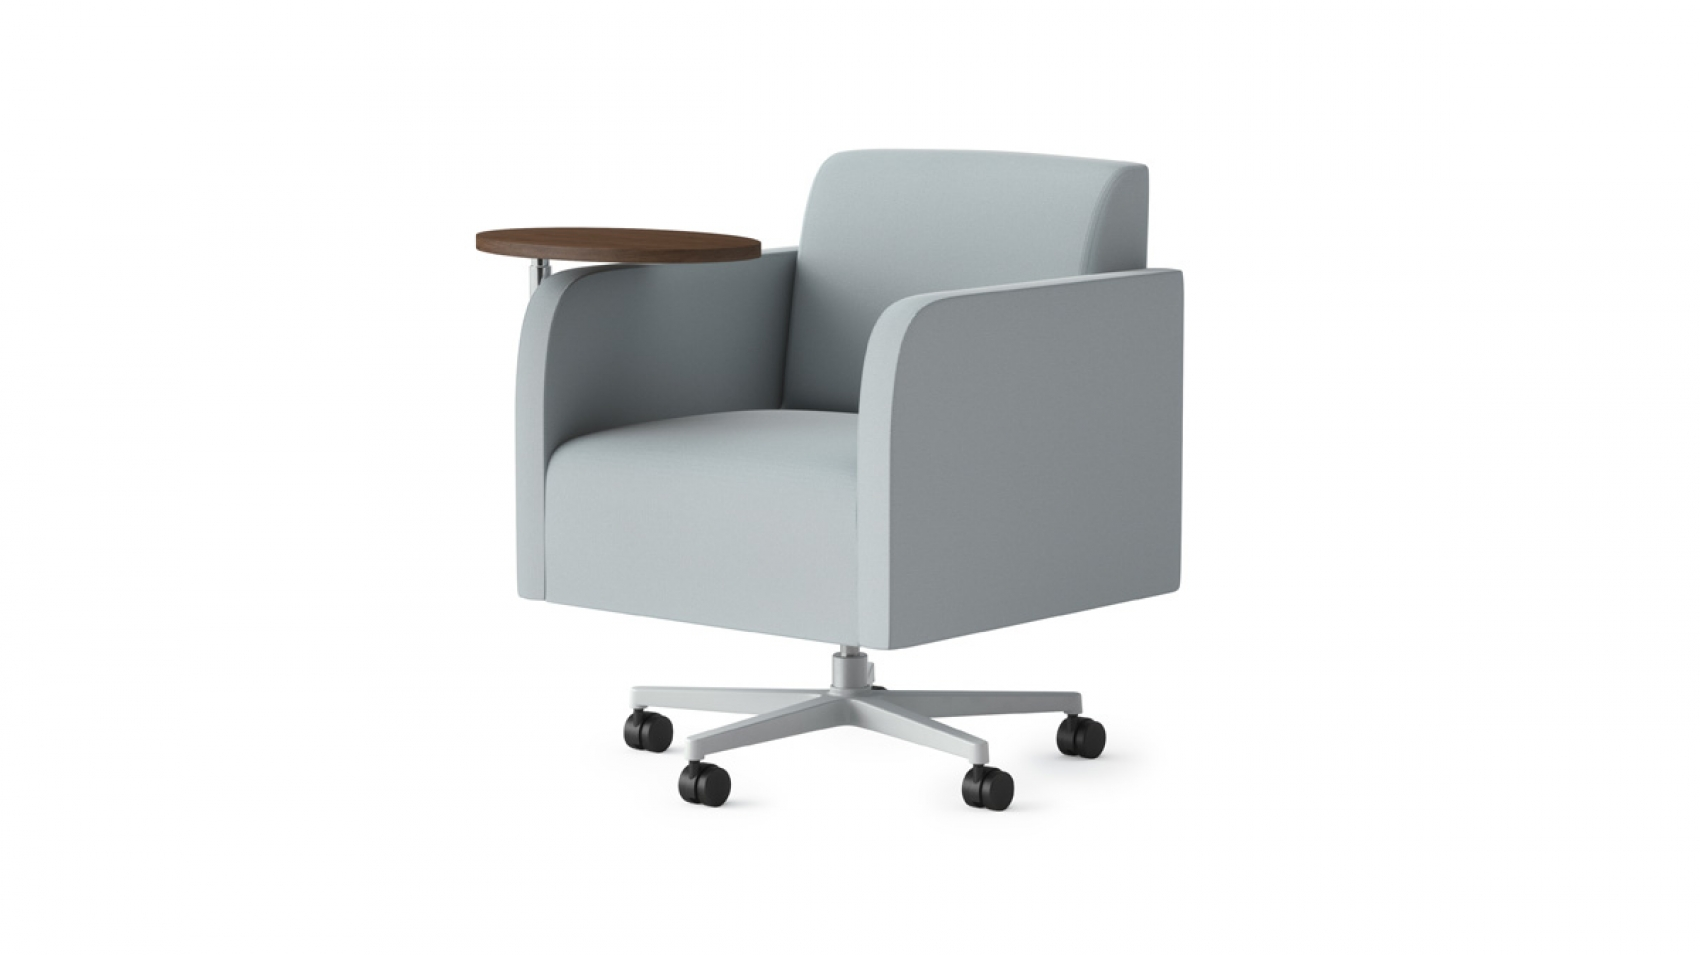 Coact Office Furniture Group